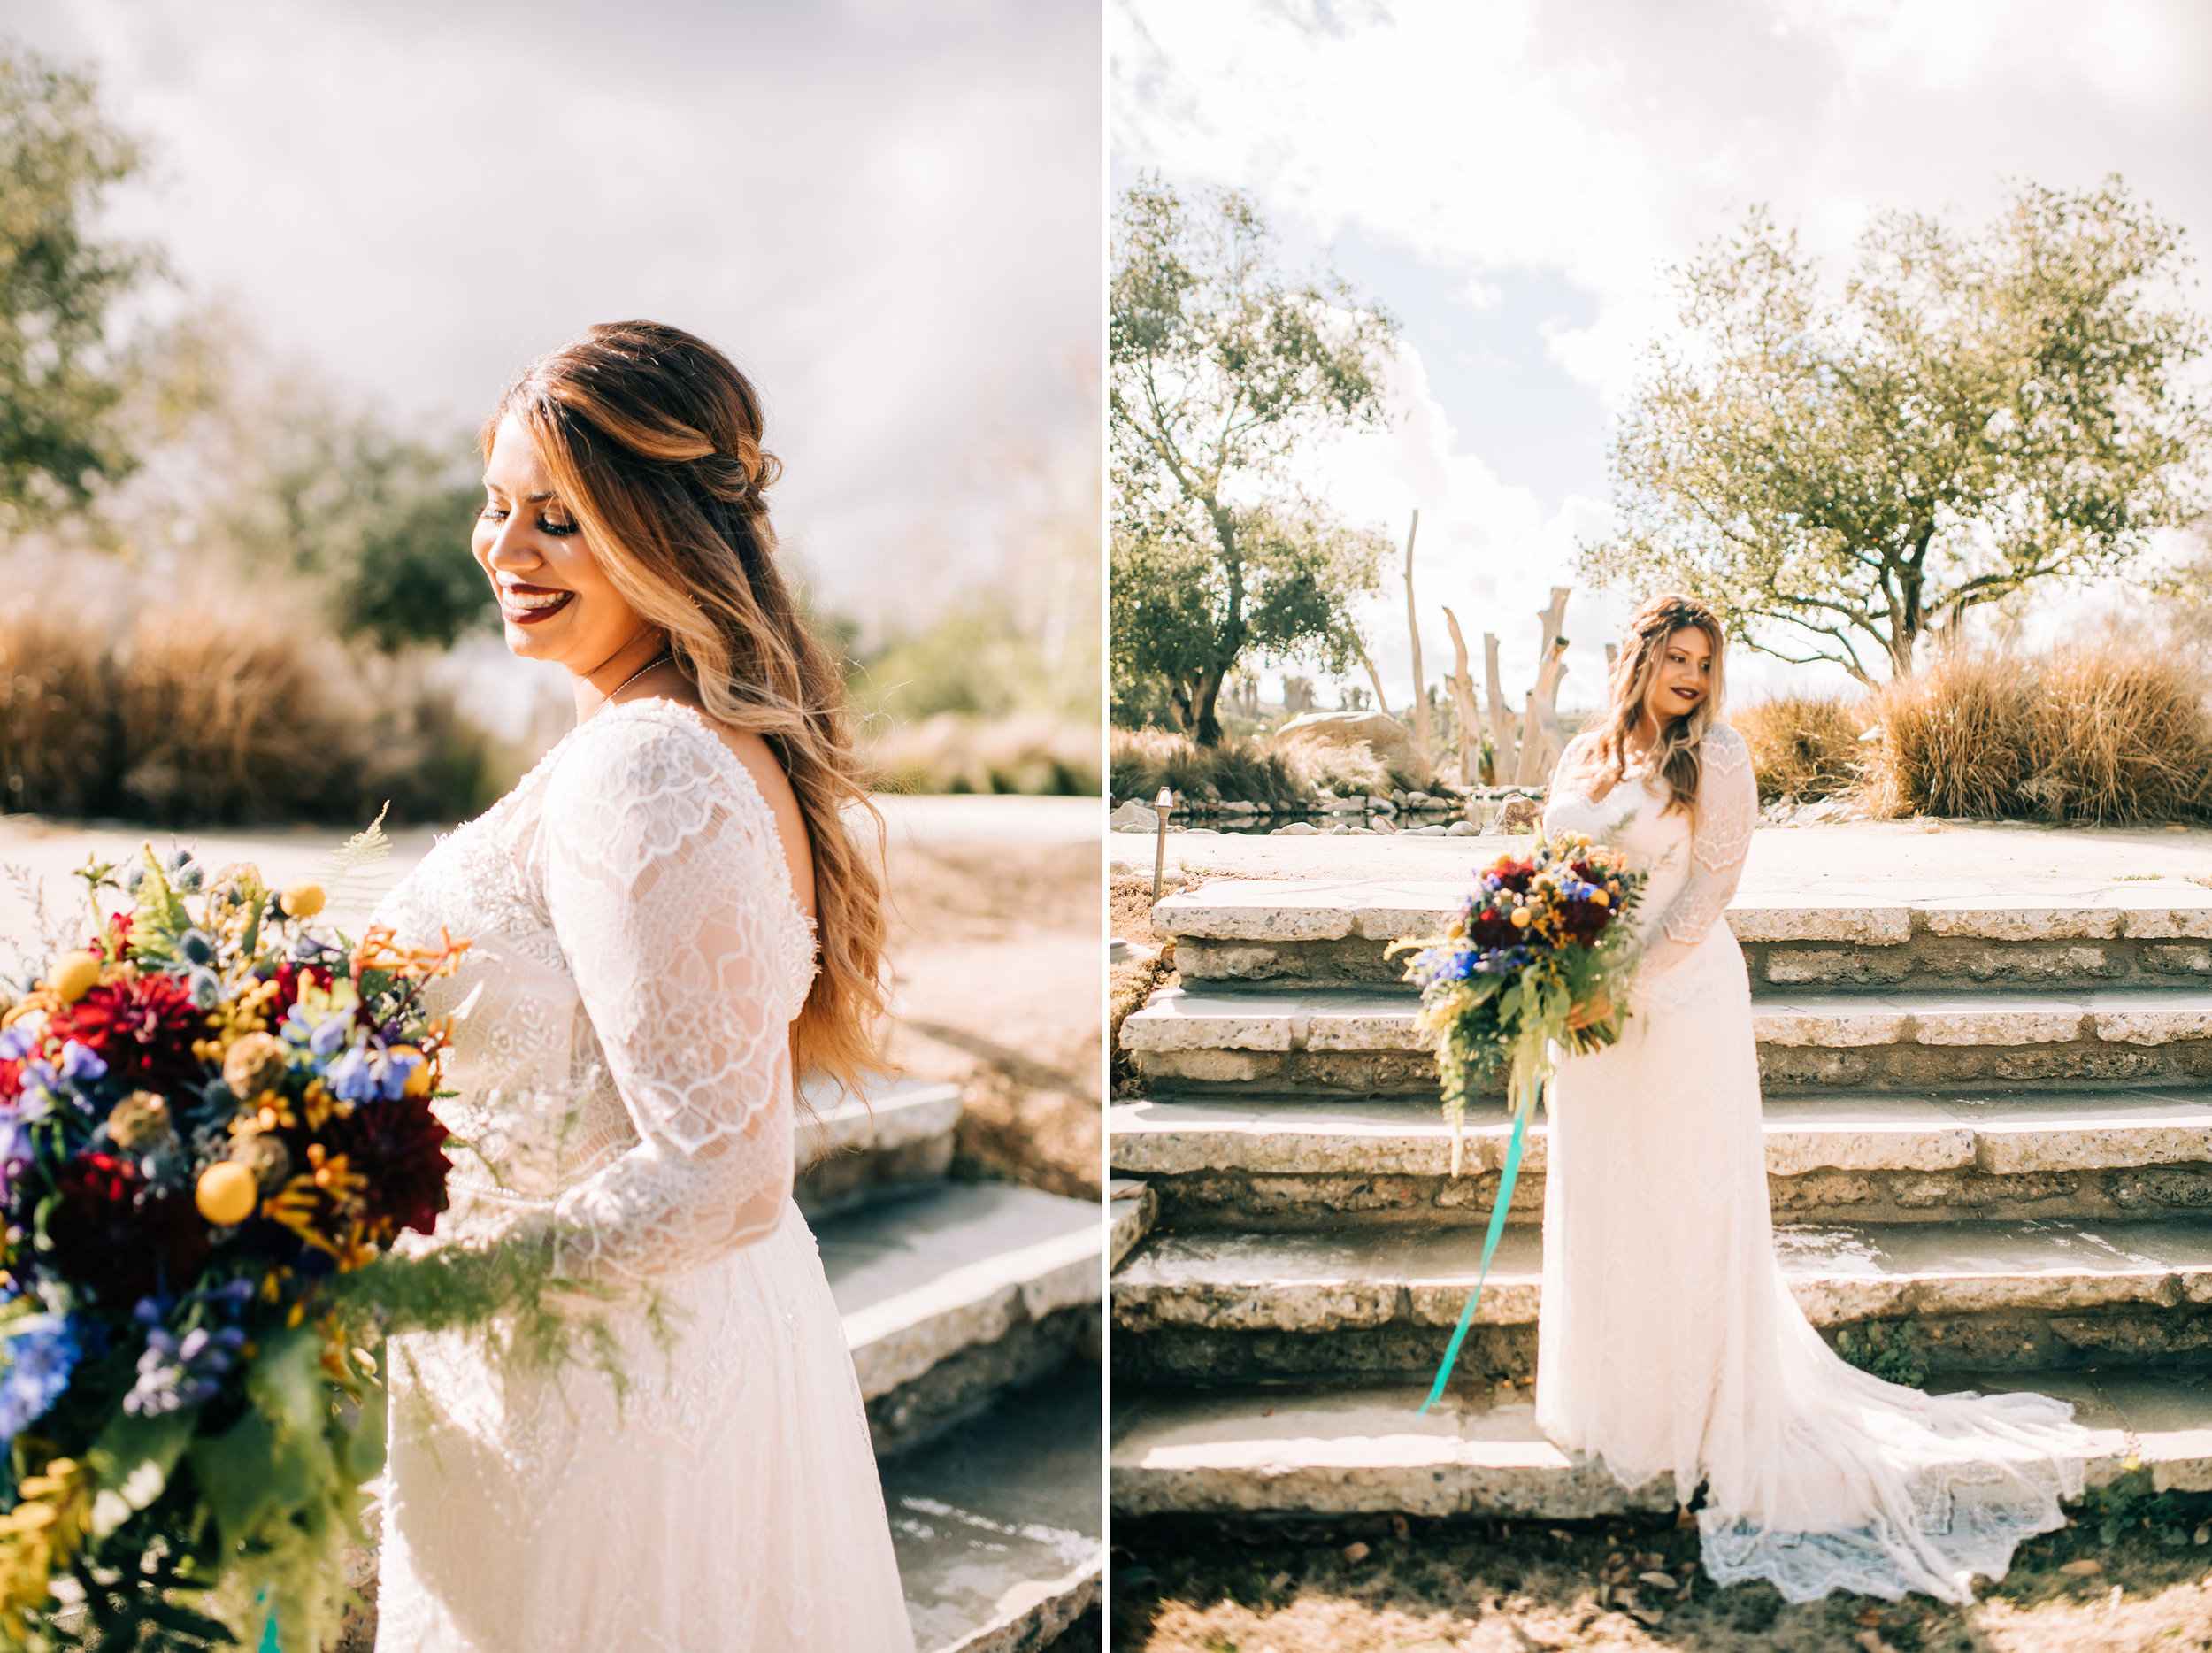 bay area nontraditional wedding photographer southern california boho wedding love light magic san francisco oakland northern california-182.jpg